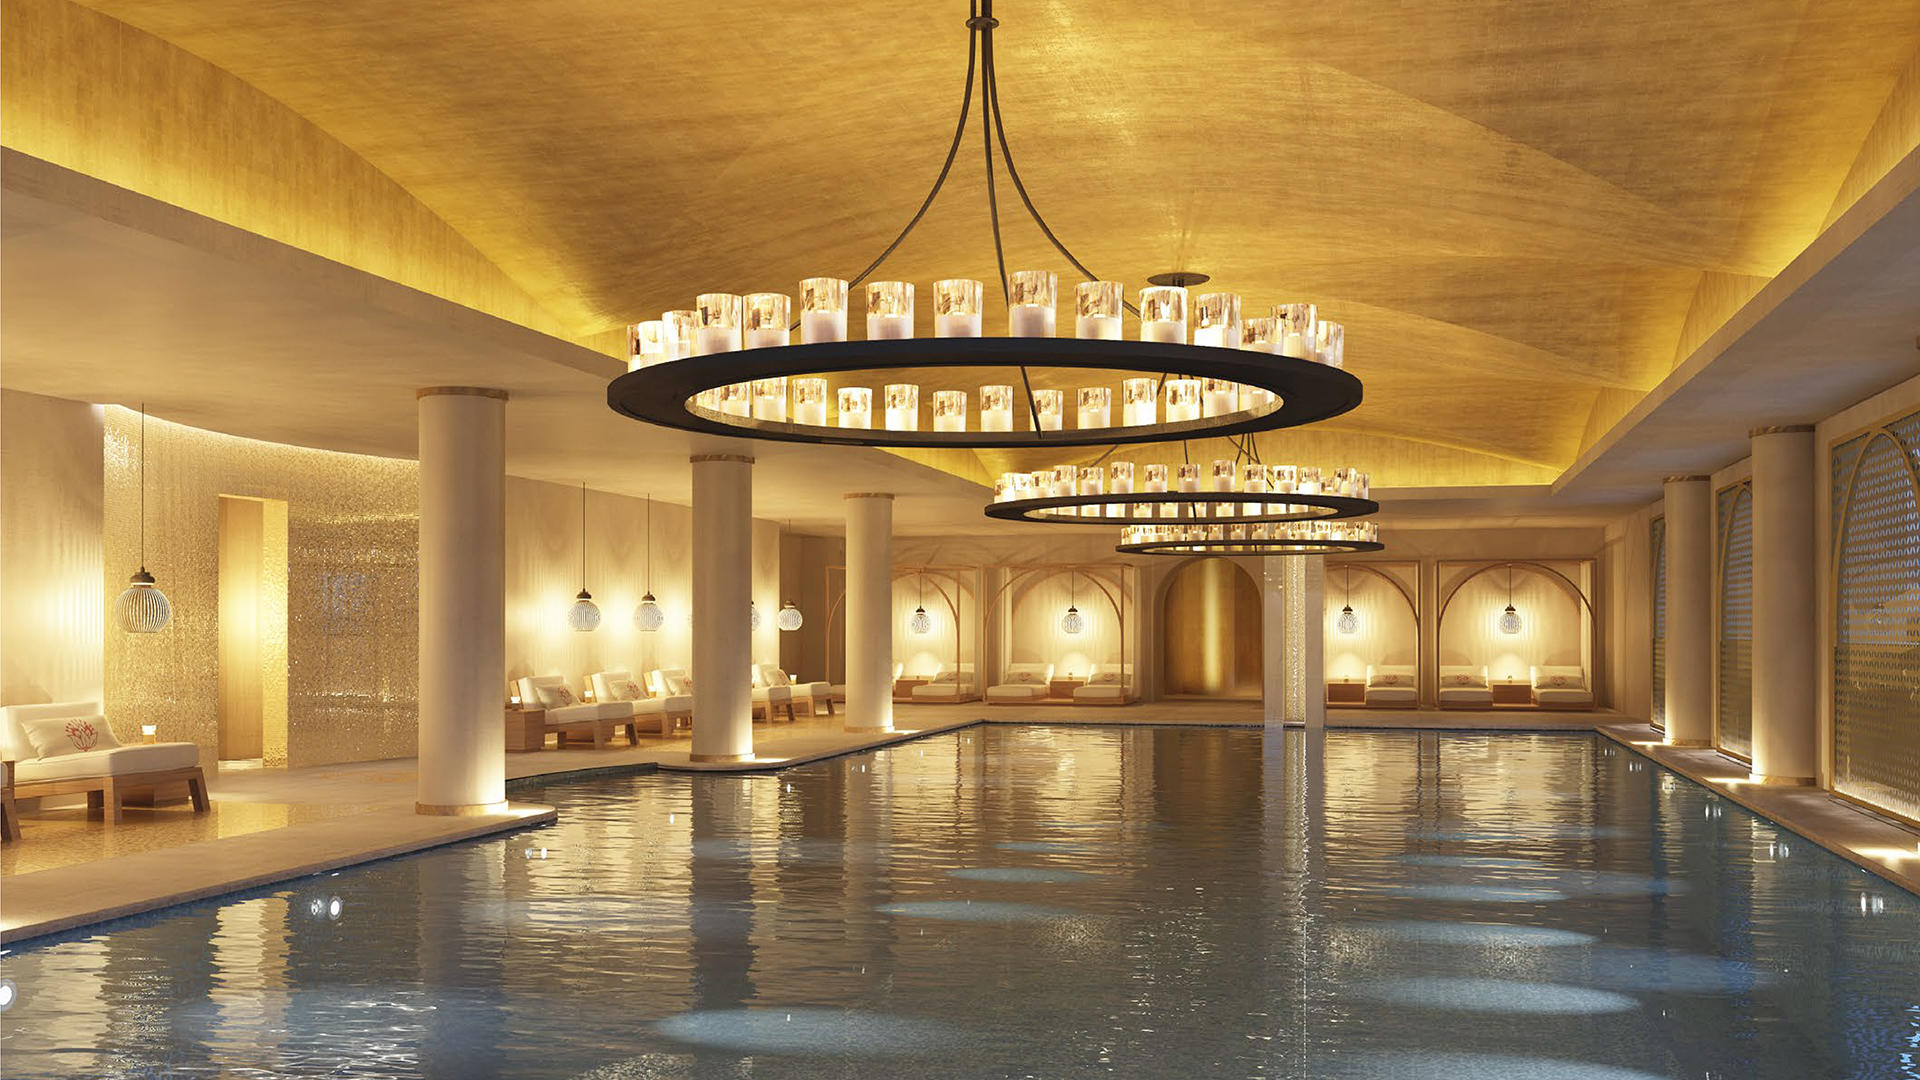 Emerald_Palace_Kempinski_Dubai Swimming_Pool